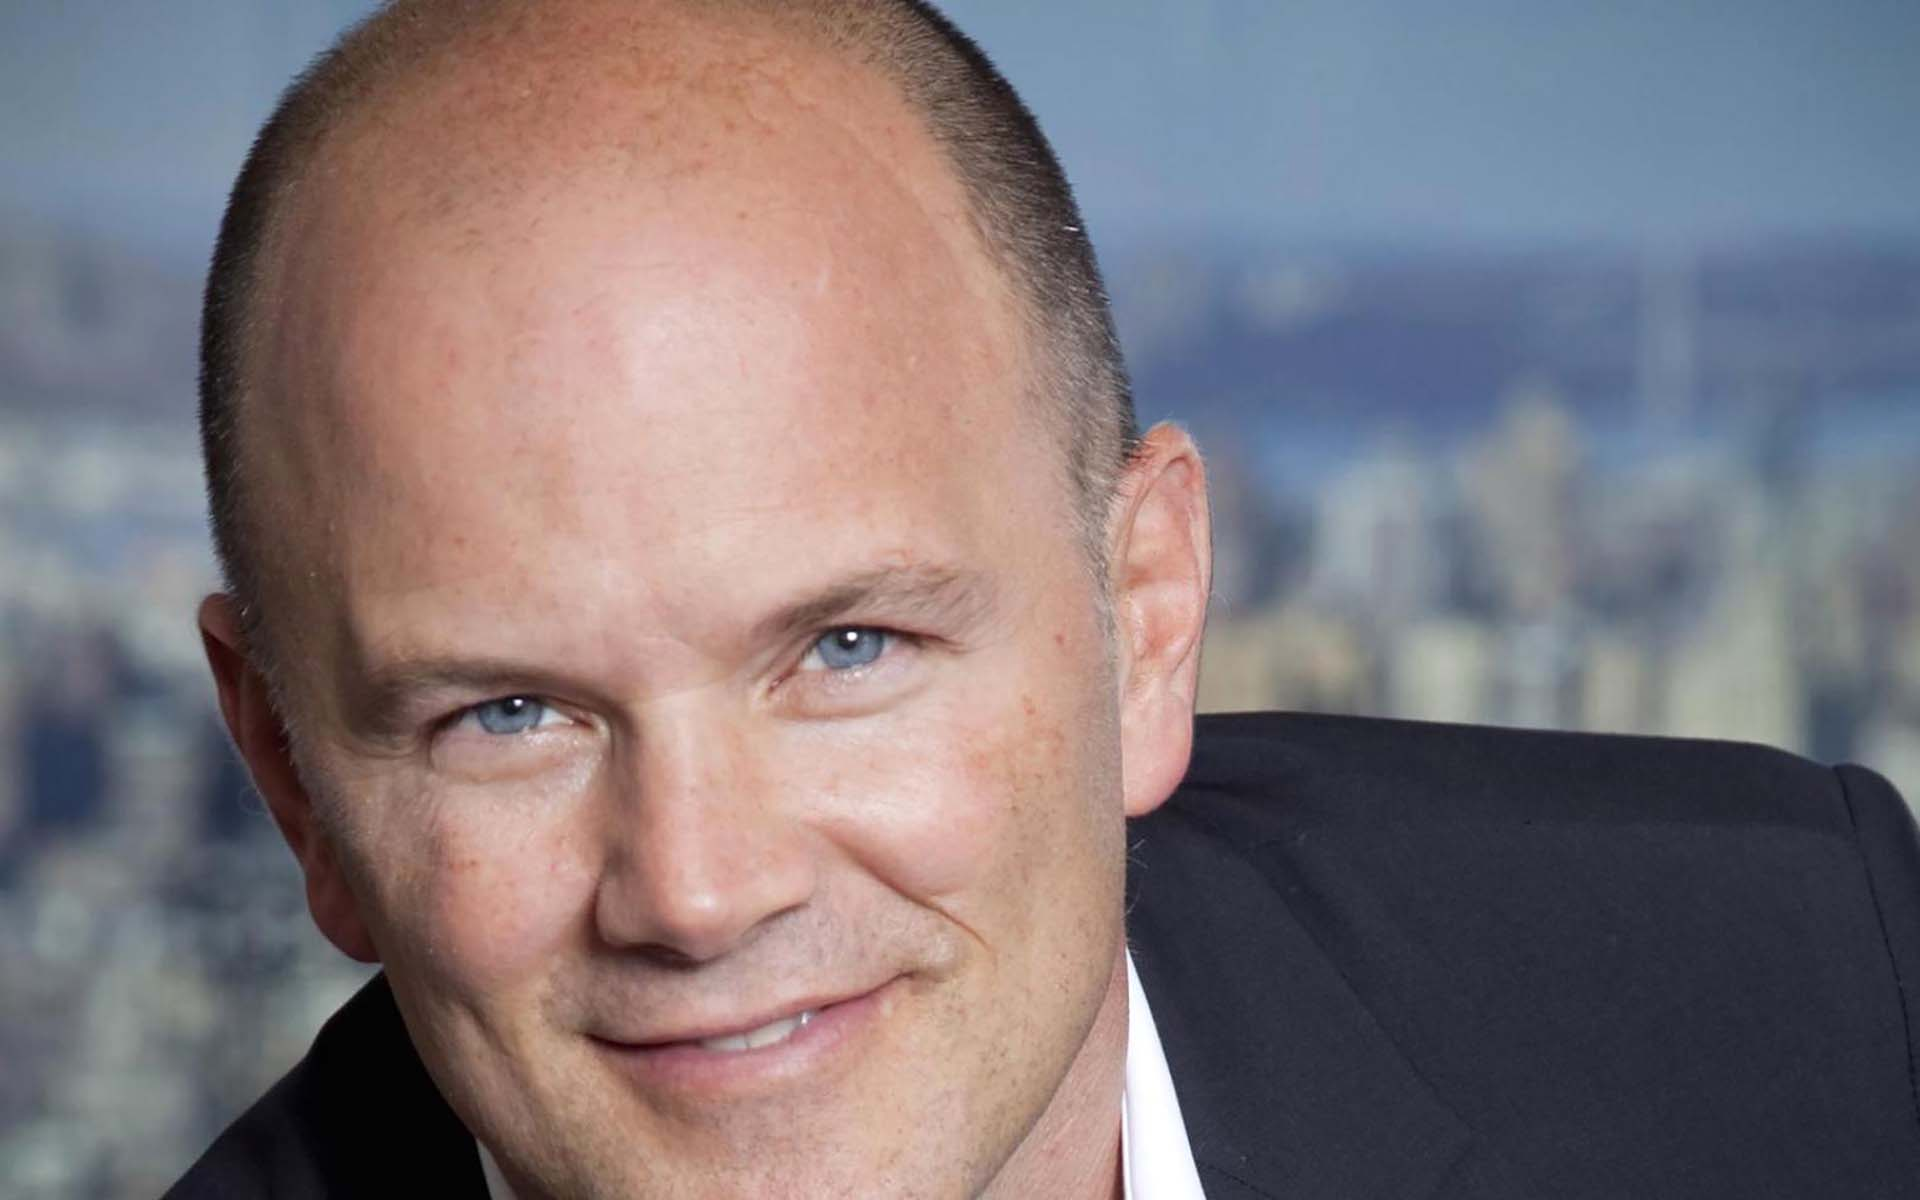 Novogratz Sees $10,000 Bitcoin Coming Soon As Bitcoins Price Rallies